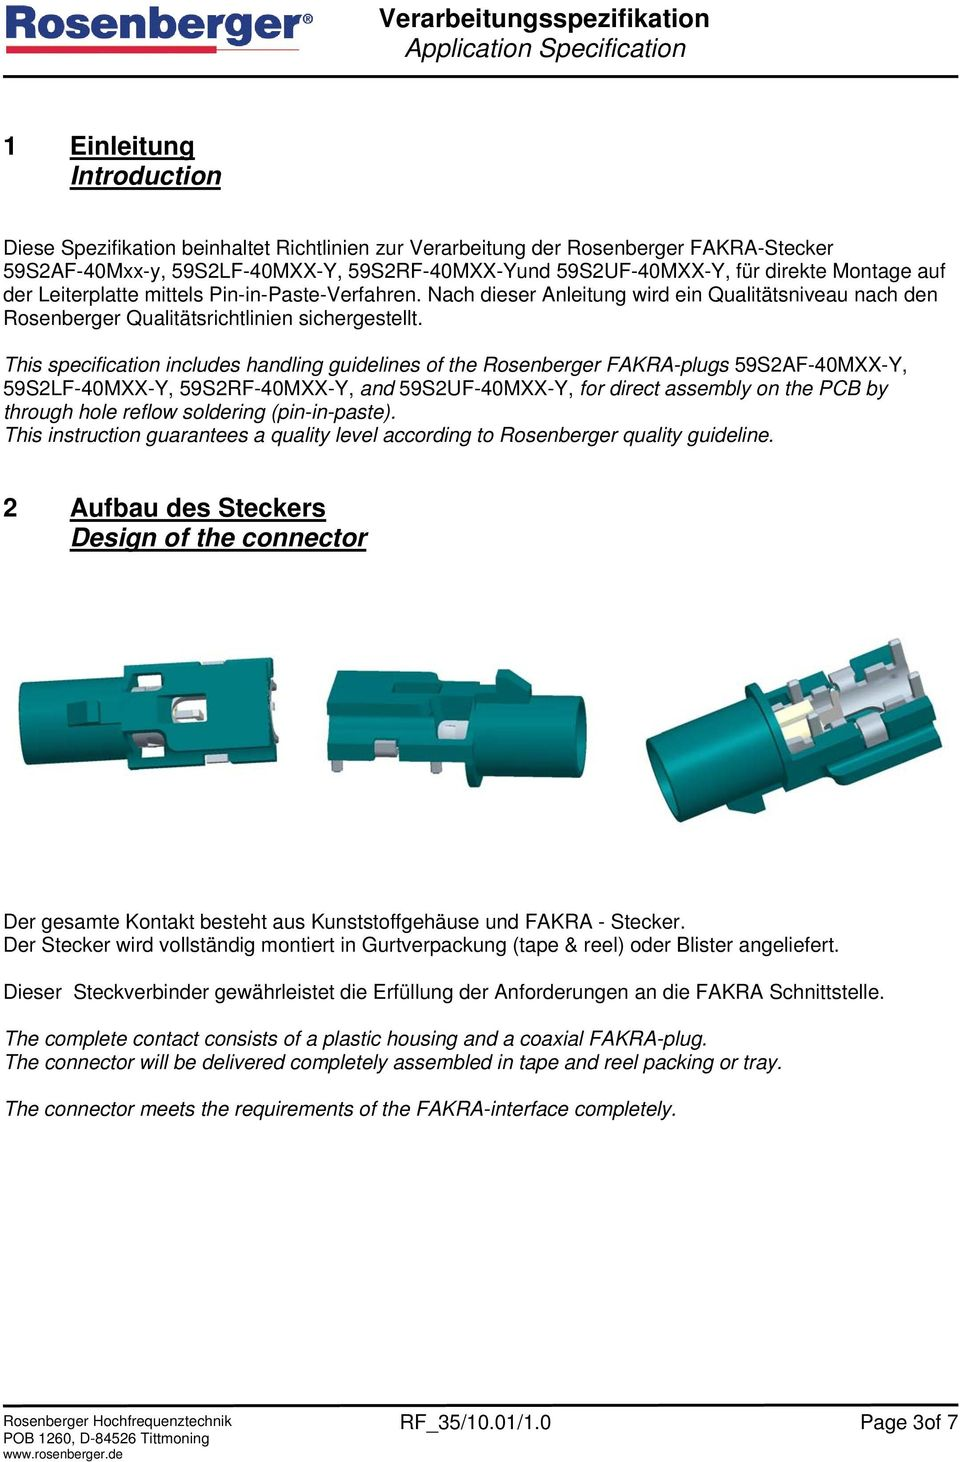 This specification includes handling guidelines of the Rosenberger FAKRA-plugs 59S2AF-40MXX-Y, 59S2LF-40MXX-Y, 59S2RF-40MXX-Y, and 59S2UF-40MXX-Y, for direct assembly on the PCB by through hole